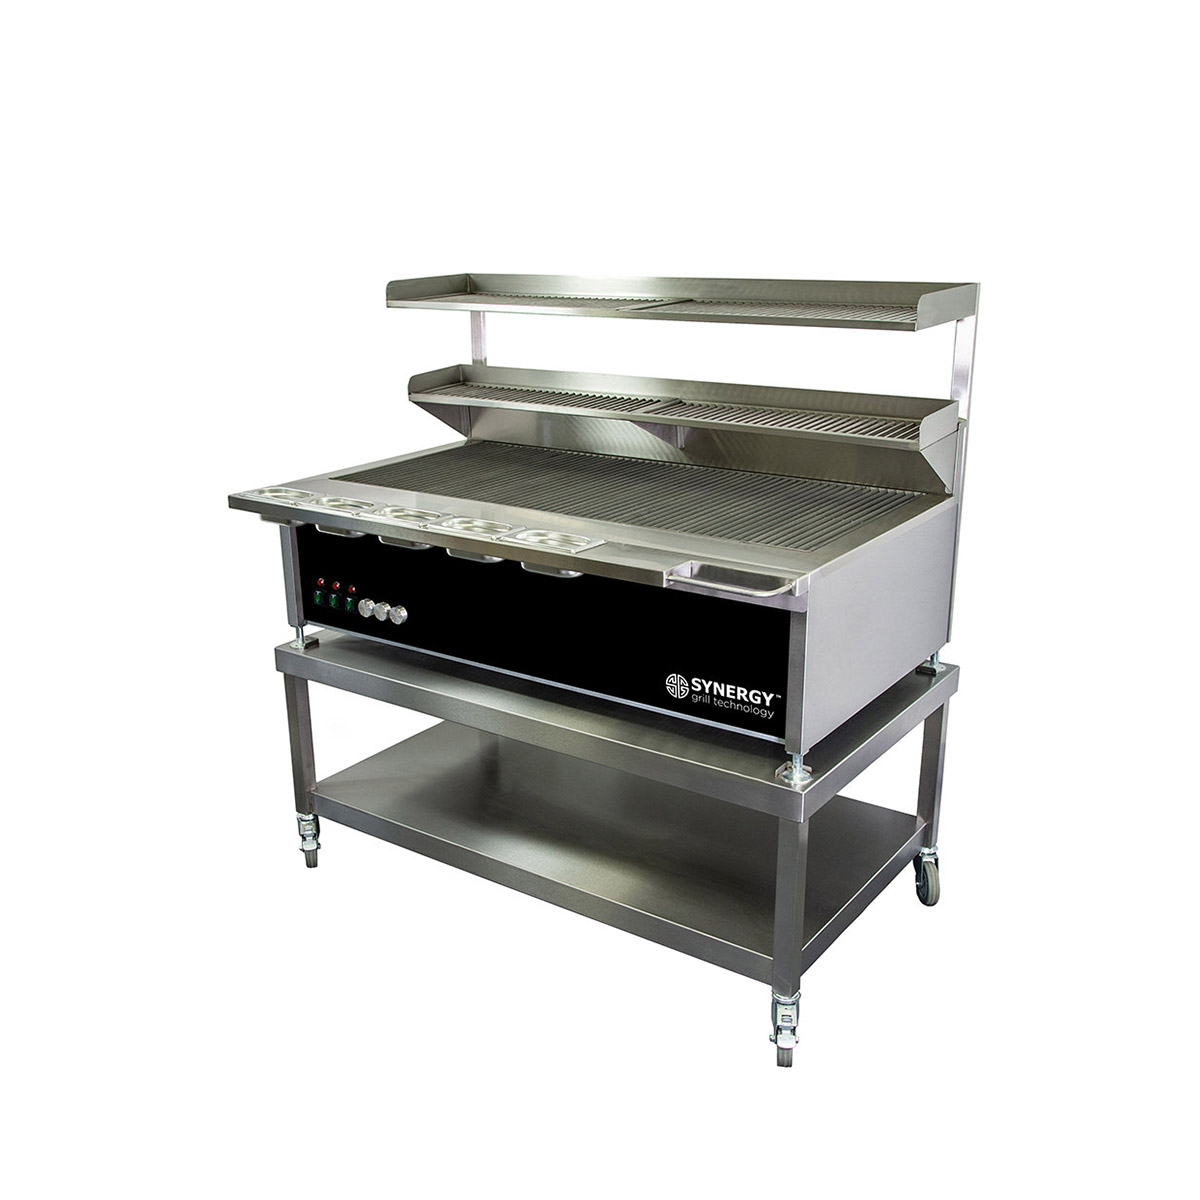 Synergy Trilogy ST1300 Grill with Garnish Rail and Slow Cook Shelf